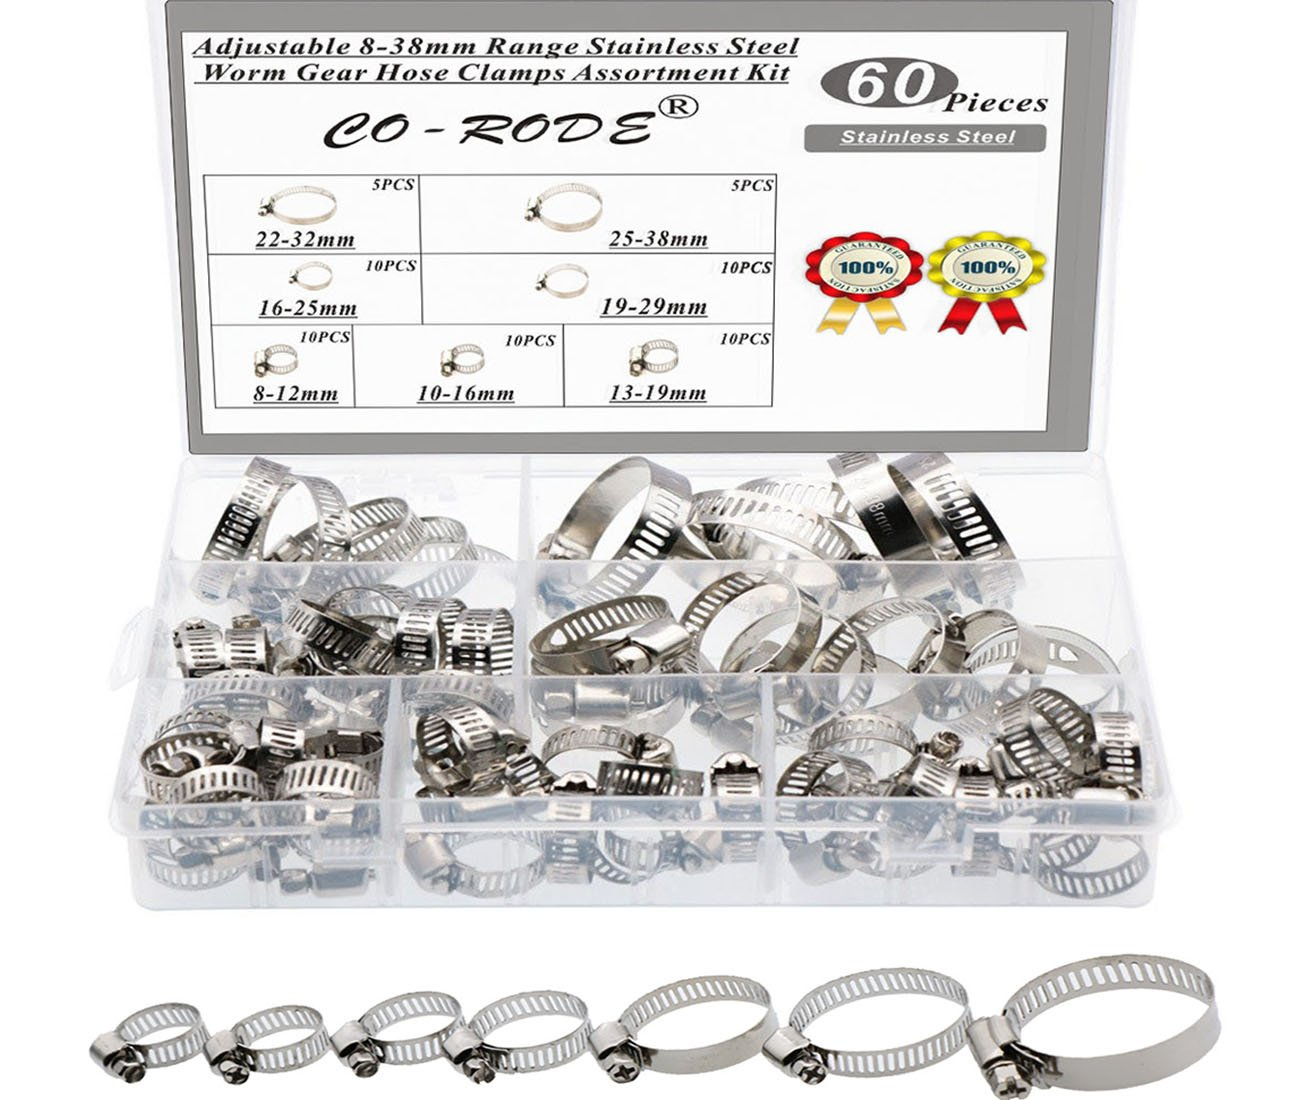 60PCS 8-38mm Range Adjustable Stainless Steel Worm Gear Hose Clamps Screw Assortment Kit CO RODE